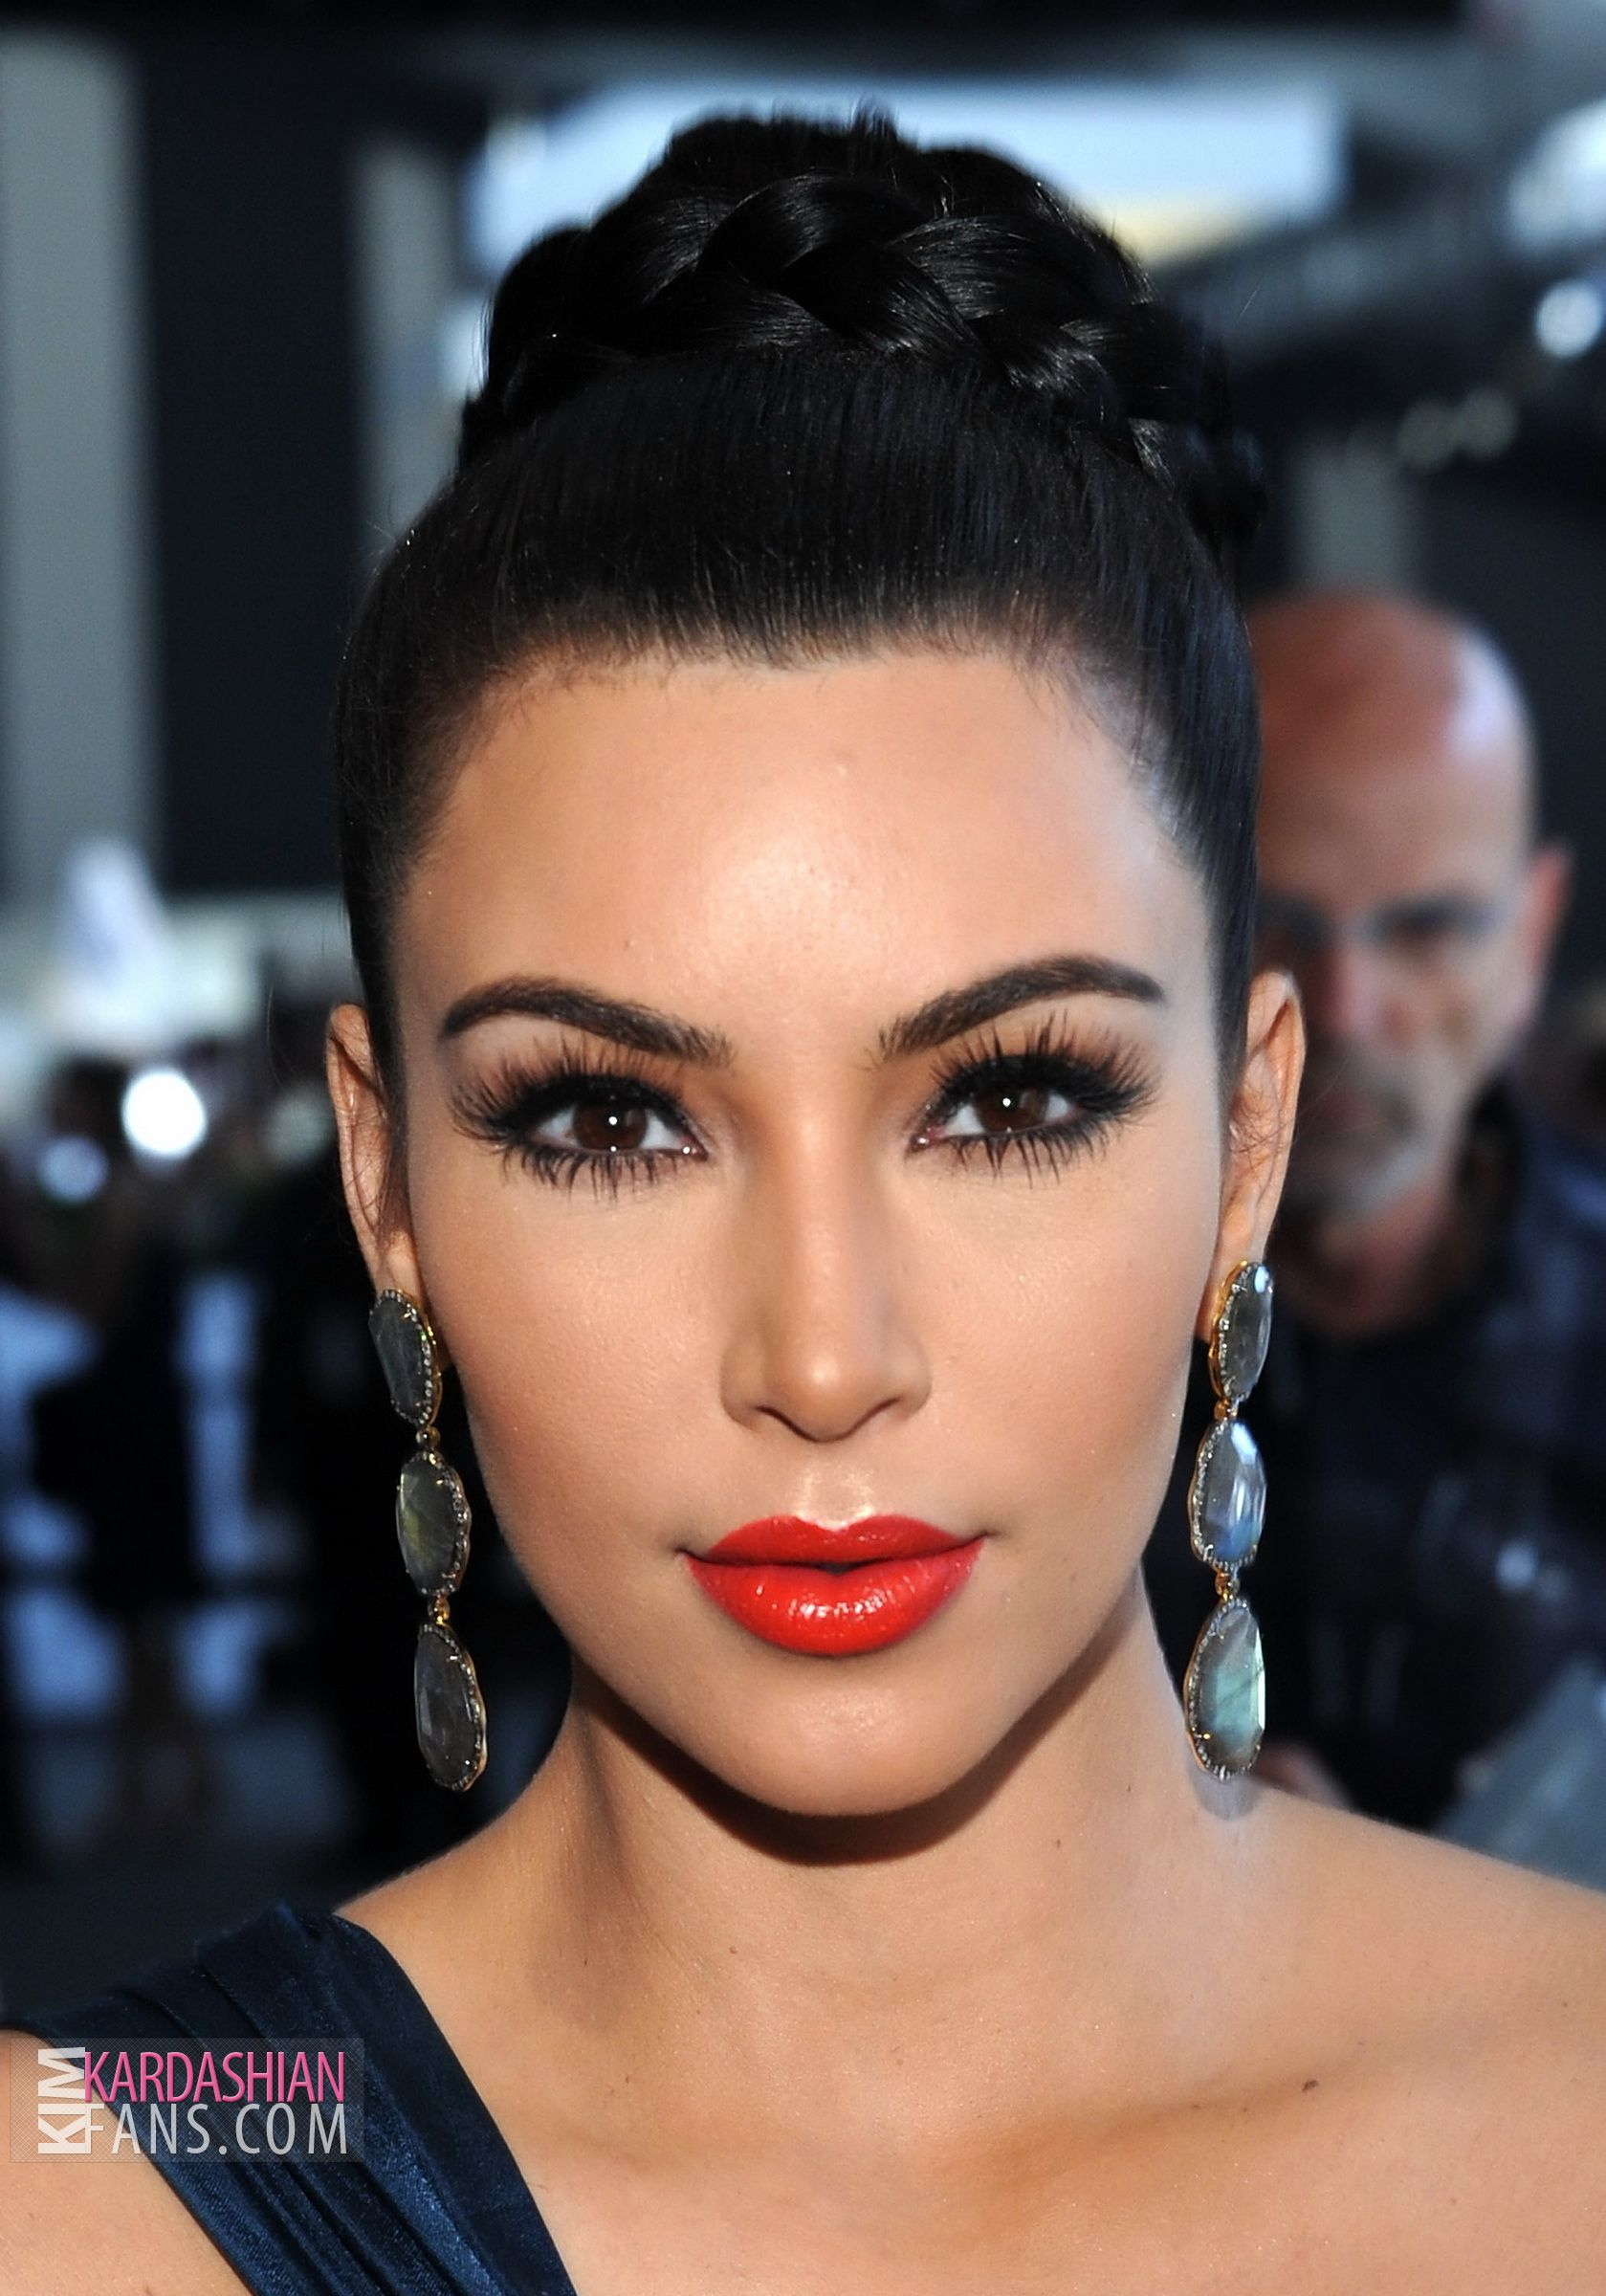 red lips makeup kim kardashian makeup, Makeup